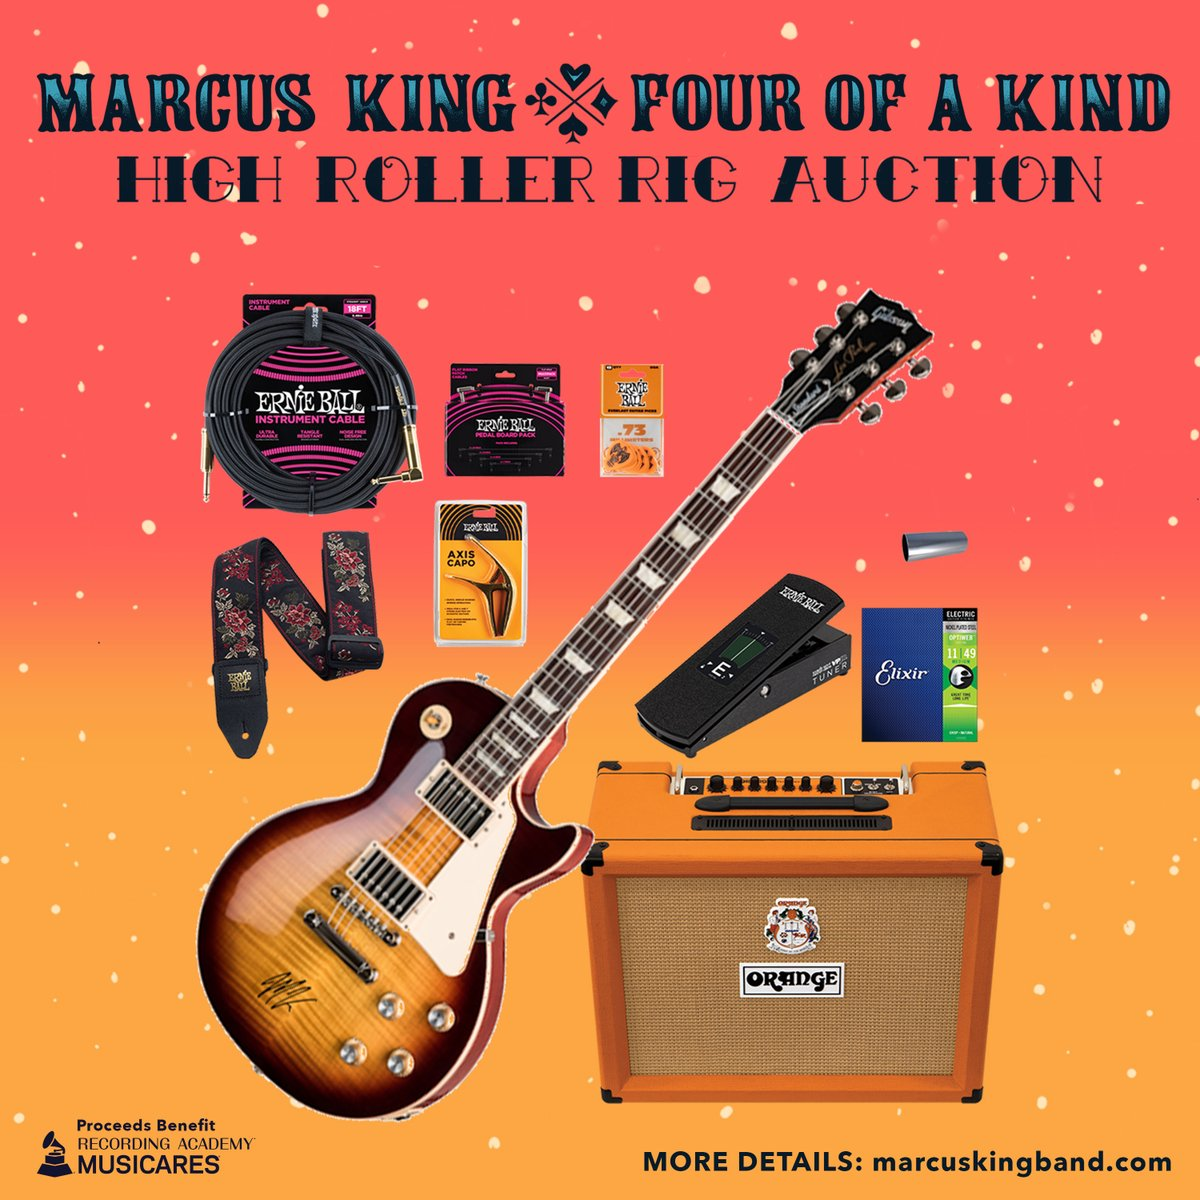 Thanks to the AMAZING Sponsors we are auctioning two INCREDIBLE LIMITED Rig Packages with items from @orangeamps @gibsonguitar, @fender, @ErnieBall, @moodyleather, and @elixirstrings to benefit @musicares!  Details here: https://MK.lnk.to/auction pic.twitter.com/HTjwO1aQK9